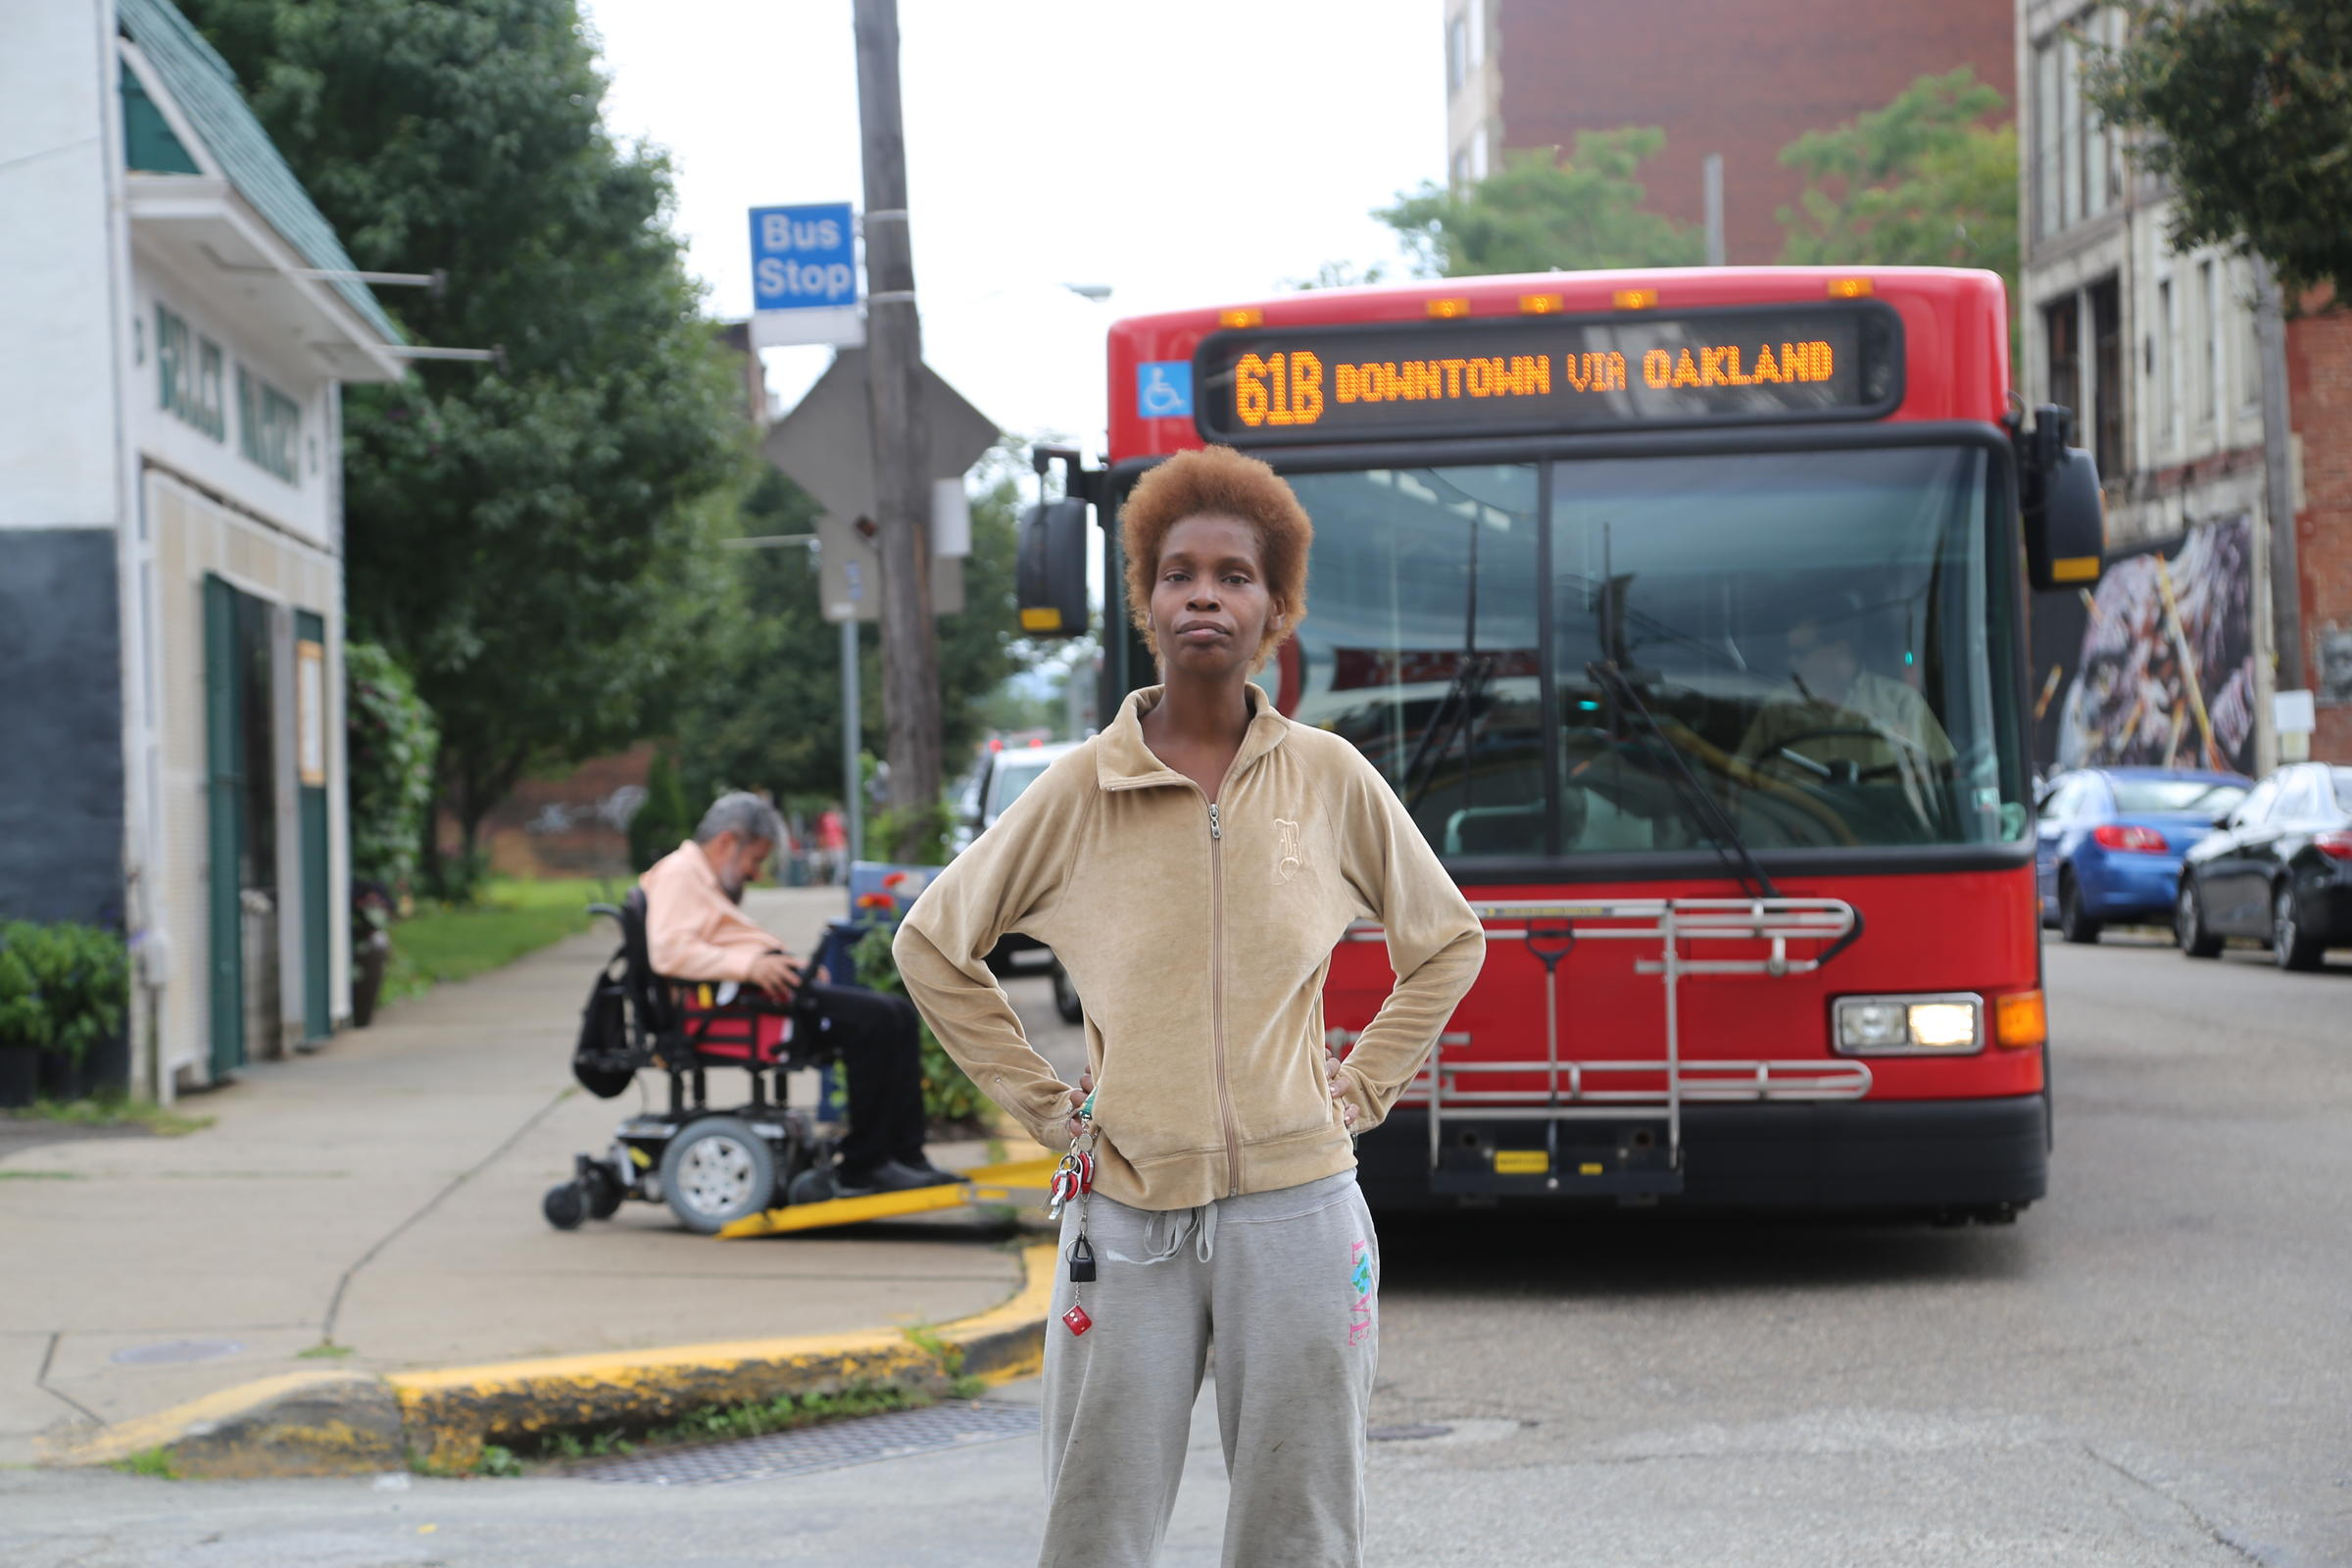 Residents Say Brt Plan Hurts People Who Need Transit The